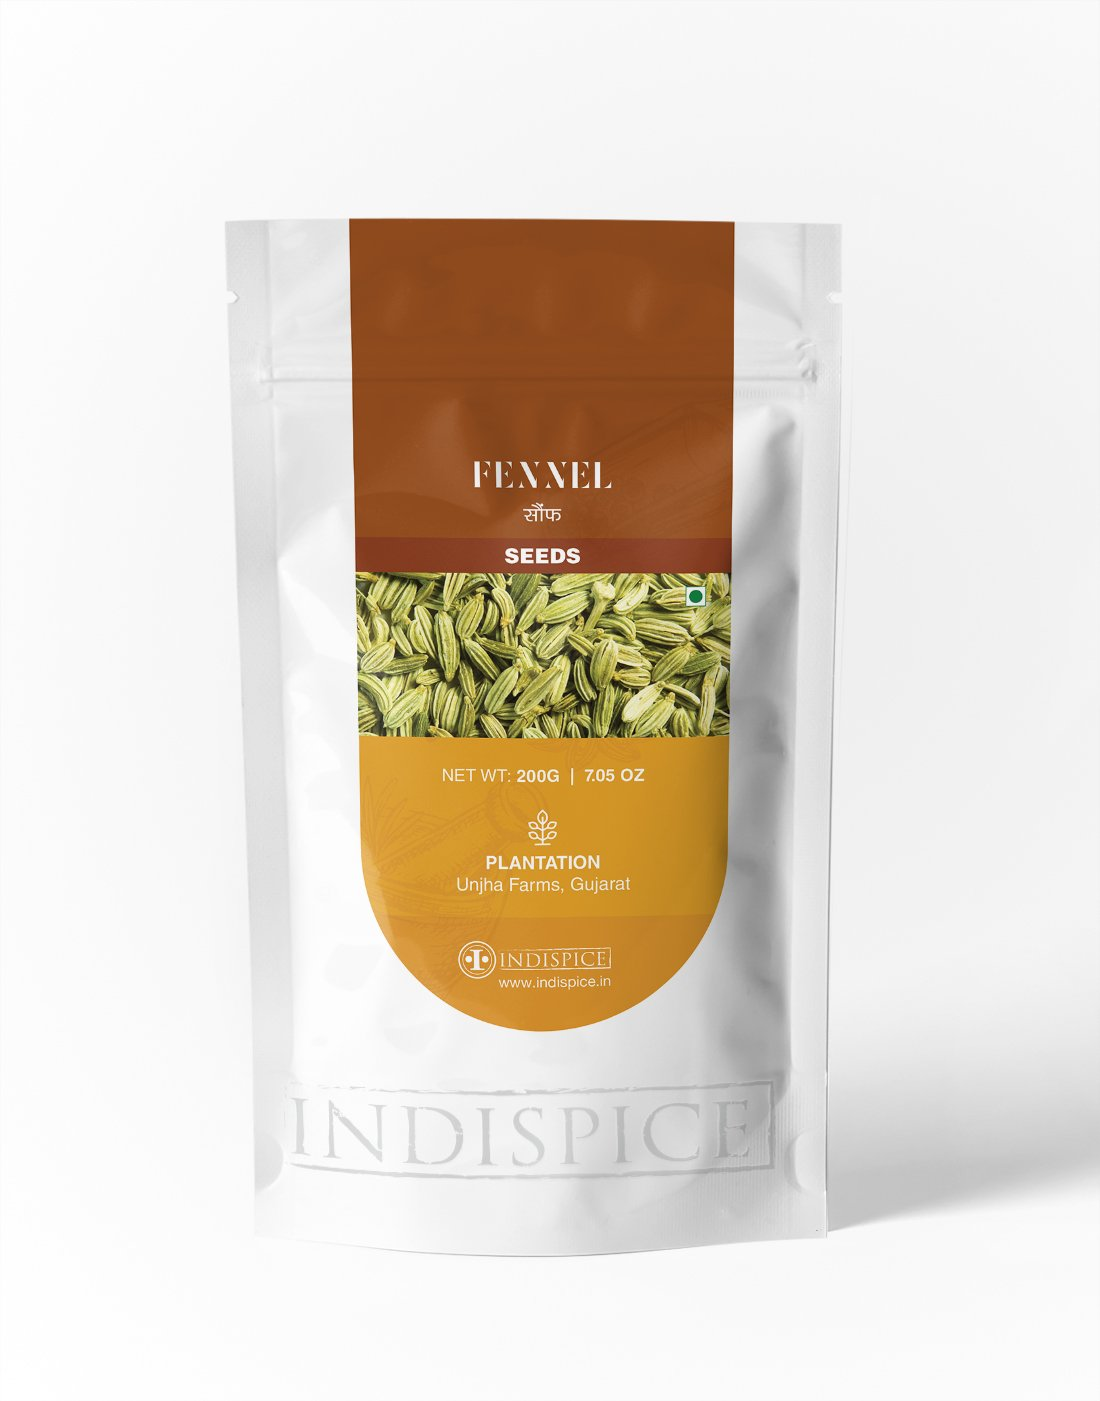 IndiSpice Indian Fennel Seed | Sourced from Finest Indian Plantations (7.05Oz)